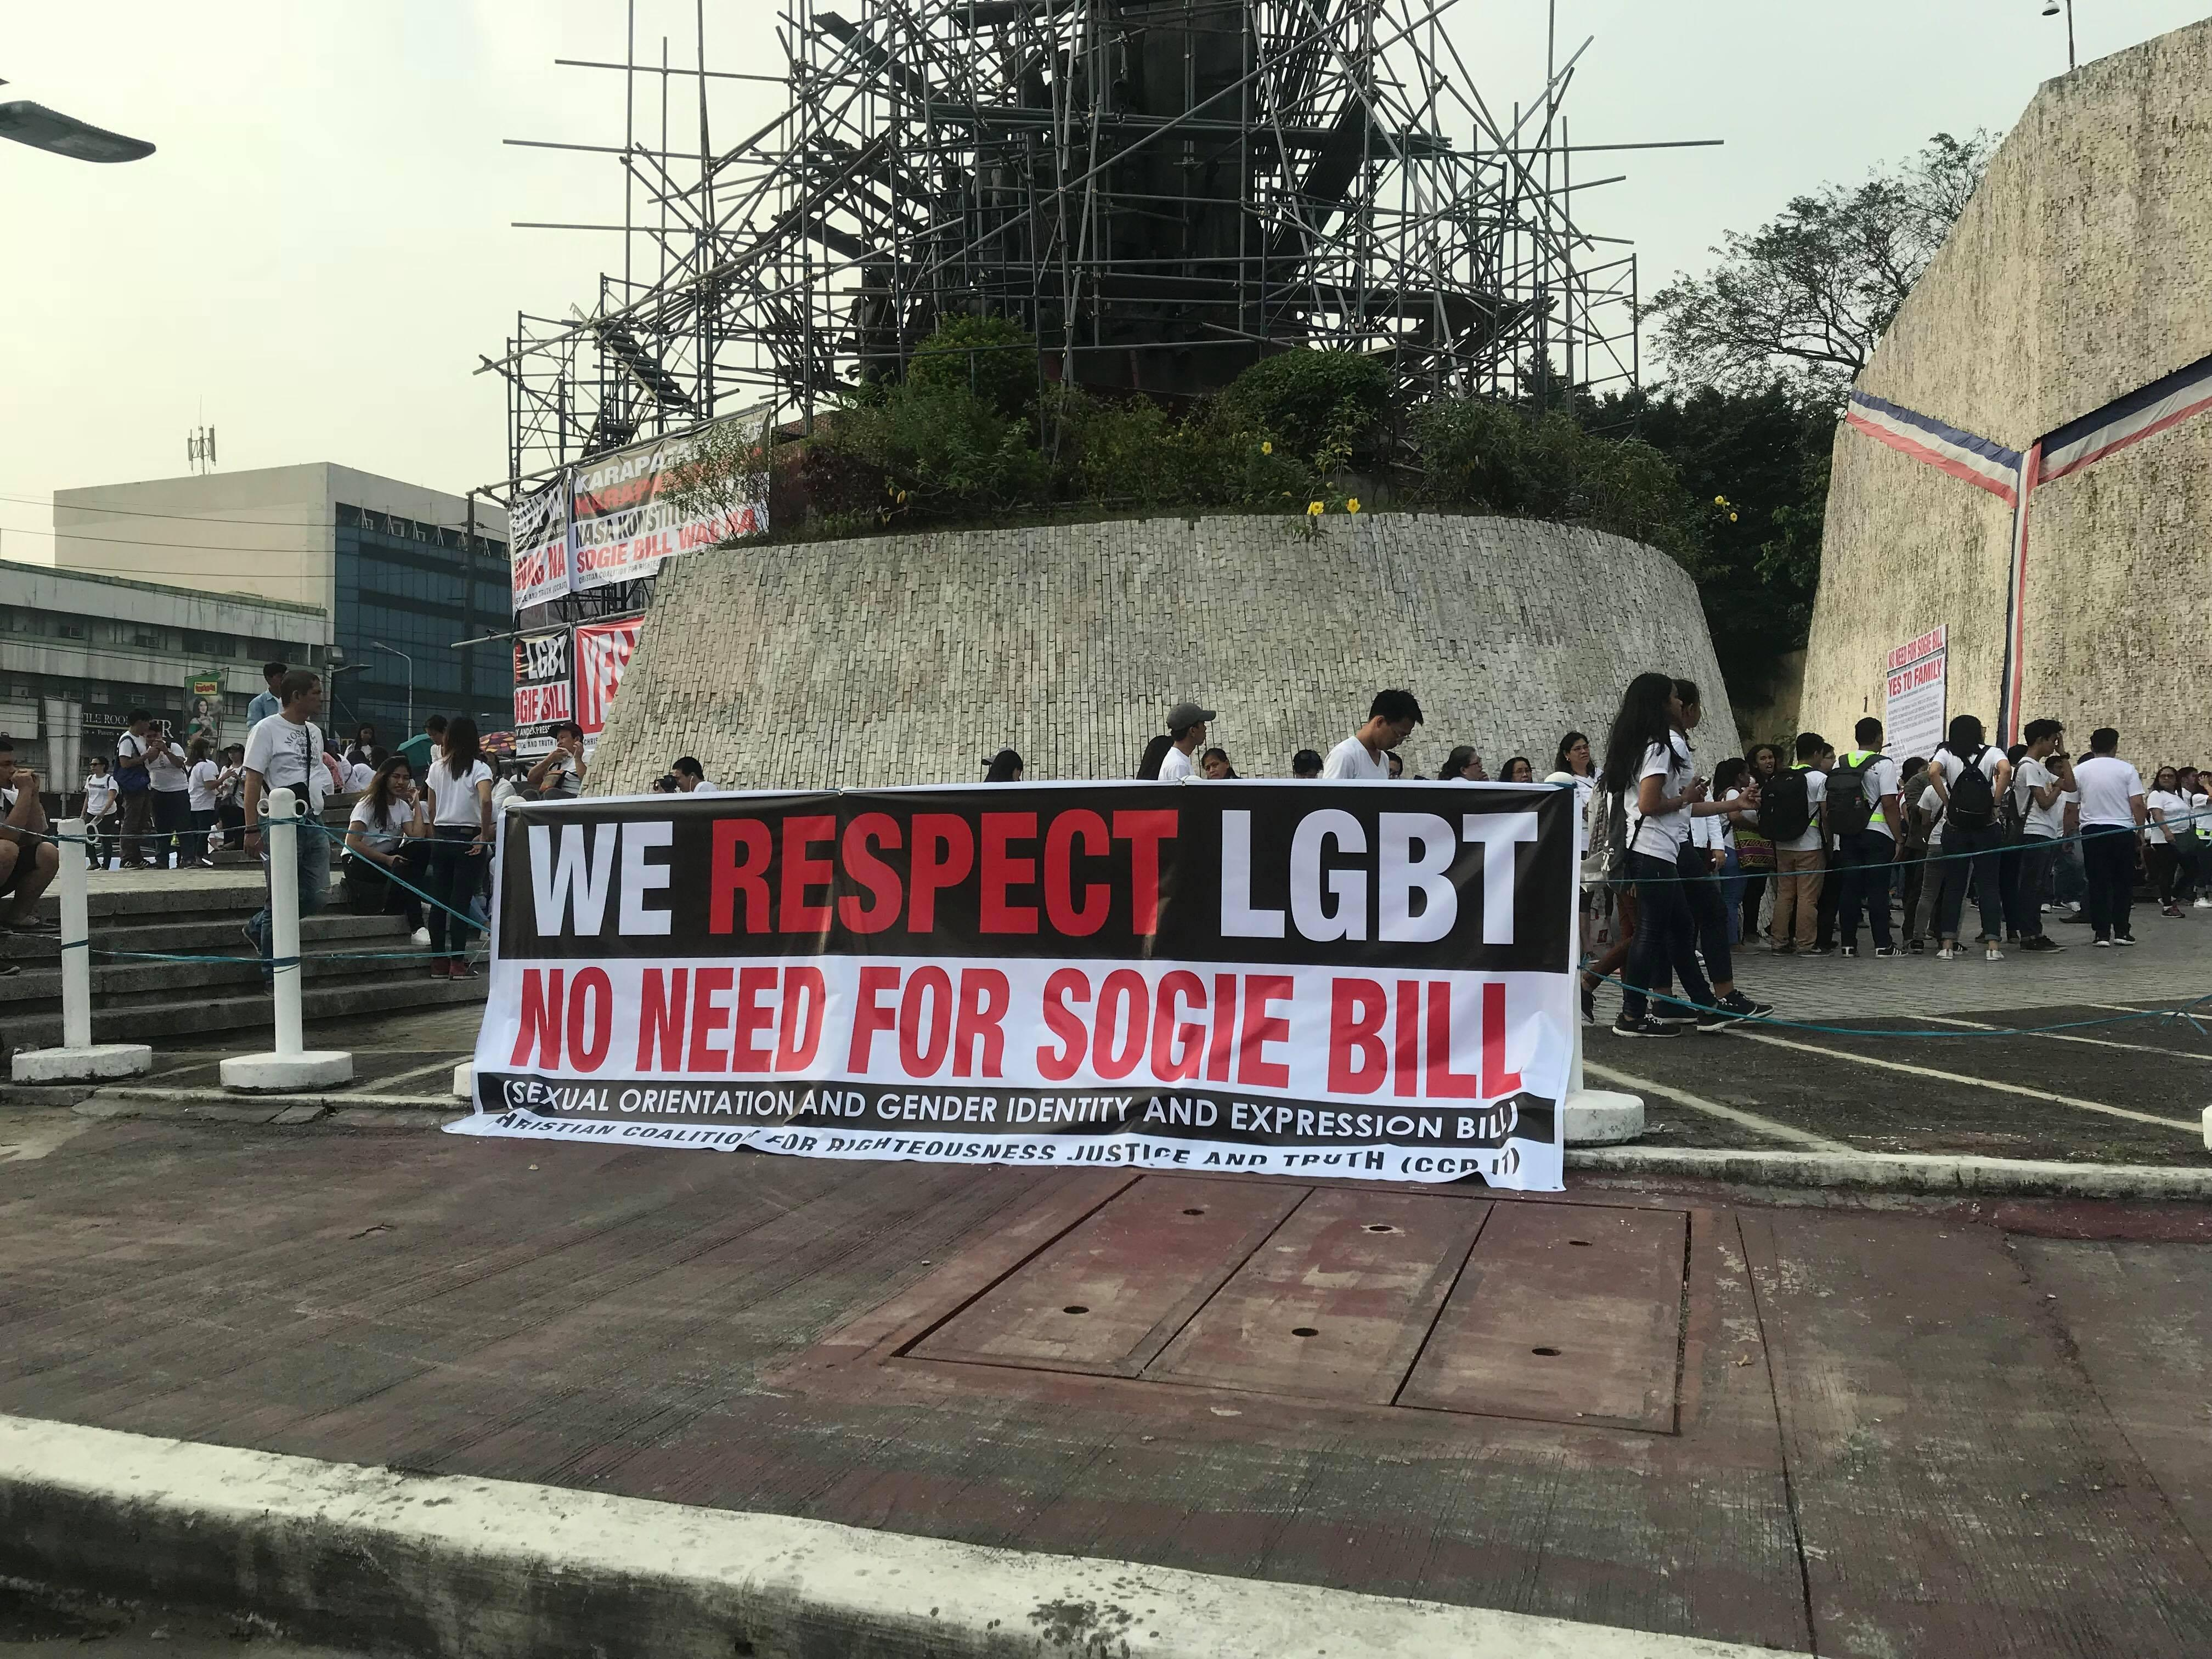 Non-discrimination towards homosexuality and christianity